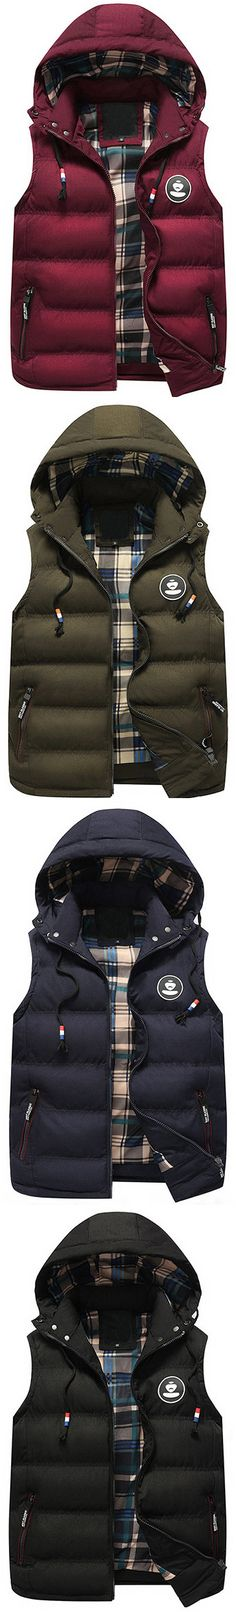 US$36.63 Casual Hooded Thicken Winter Fall Cotton Coat Vest for Men#vest #style #love